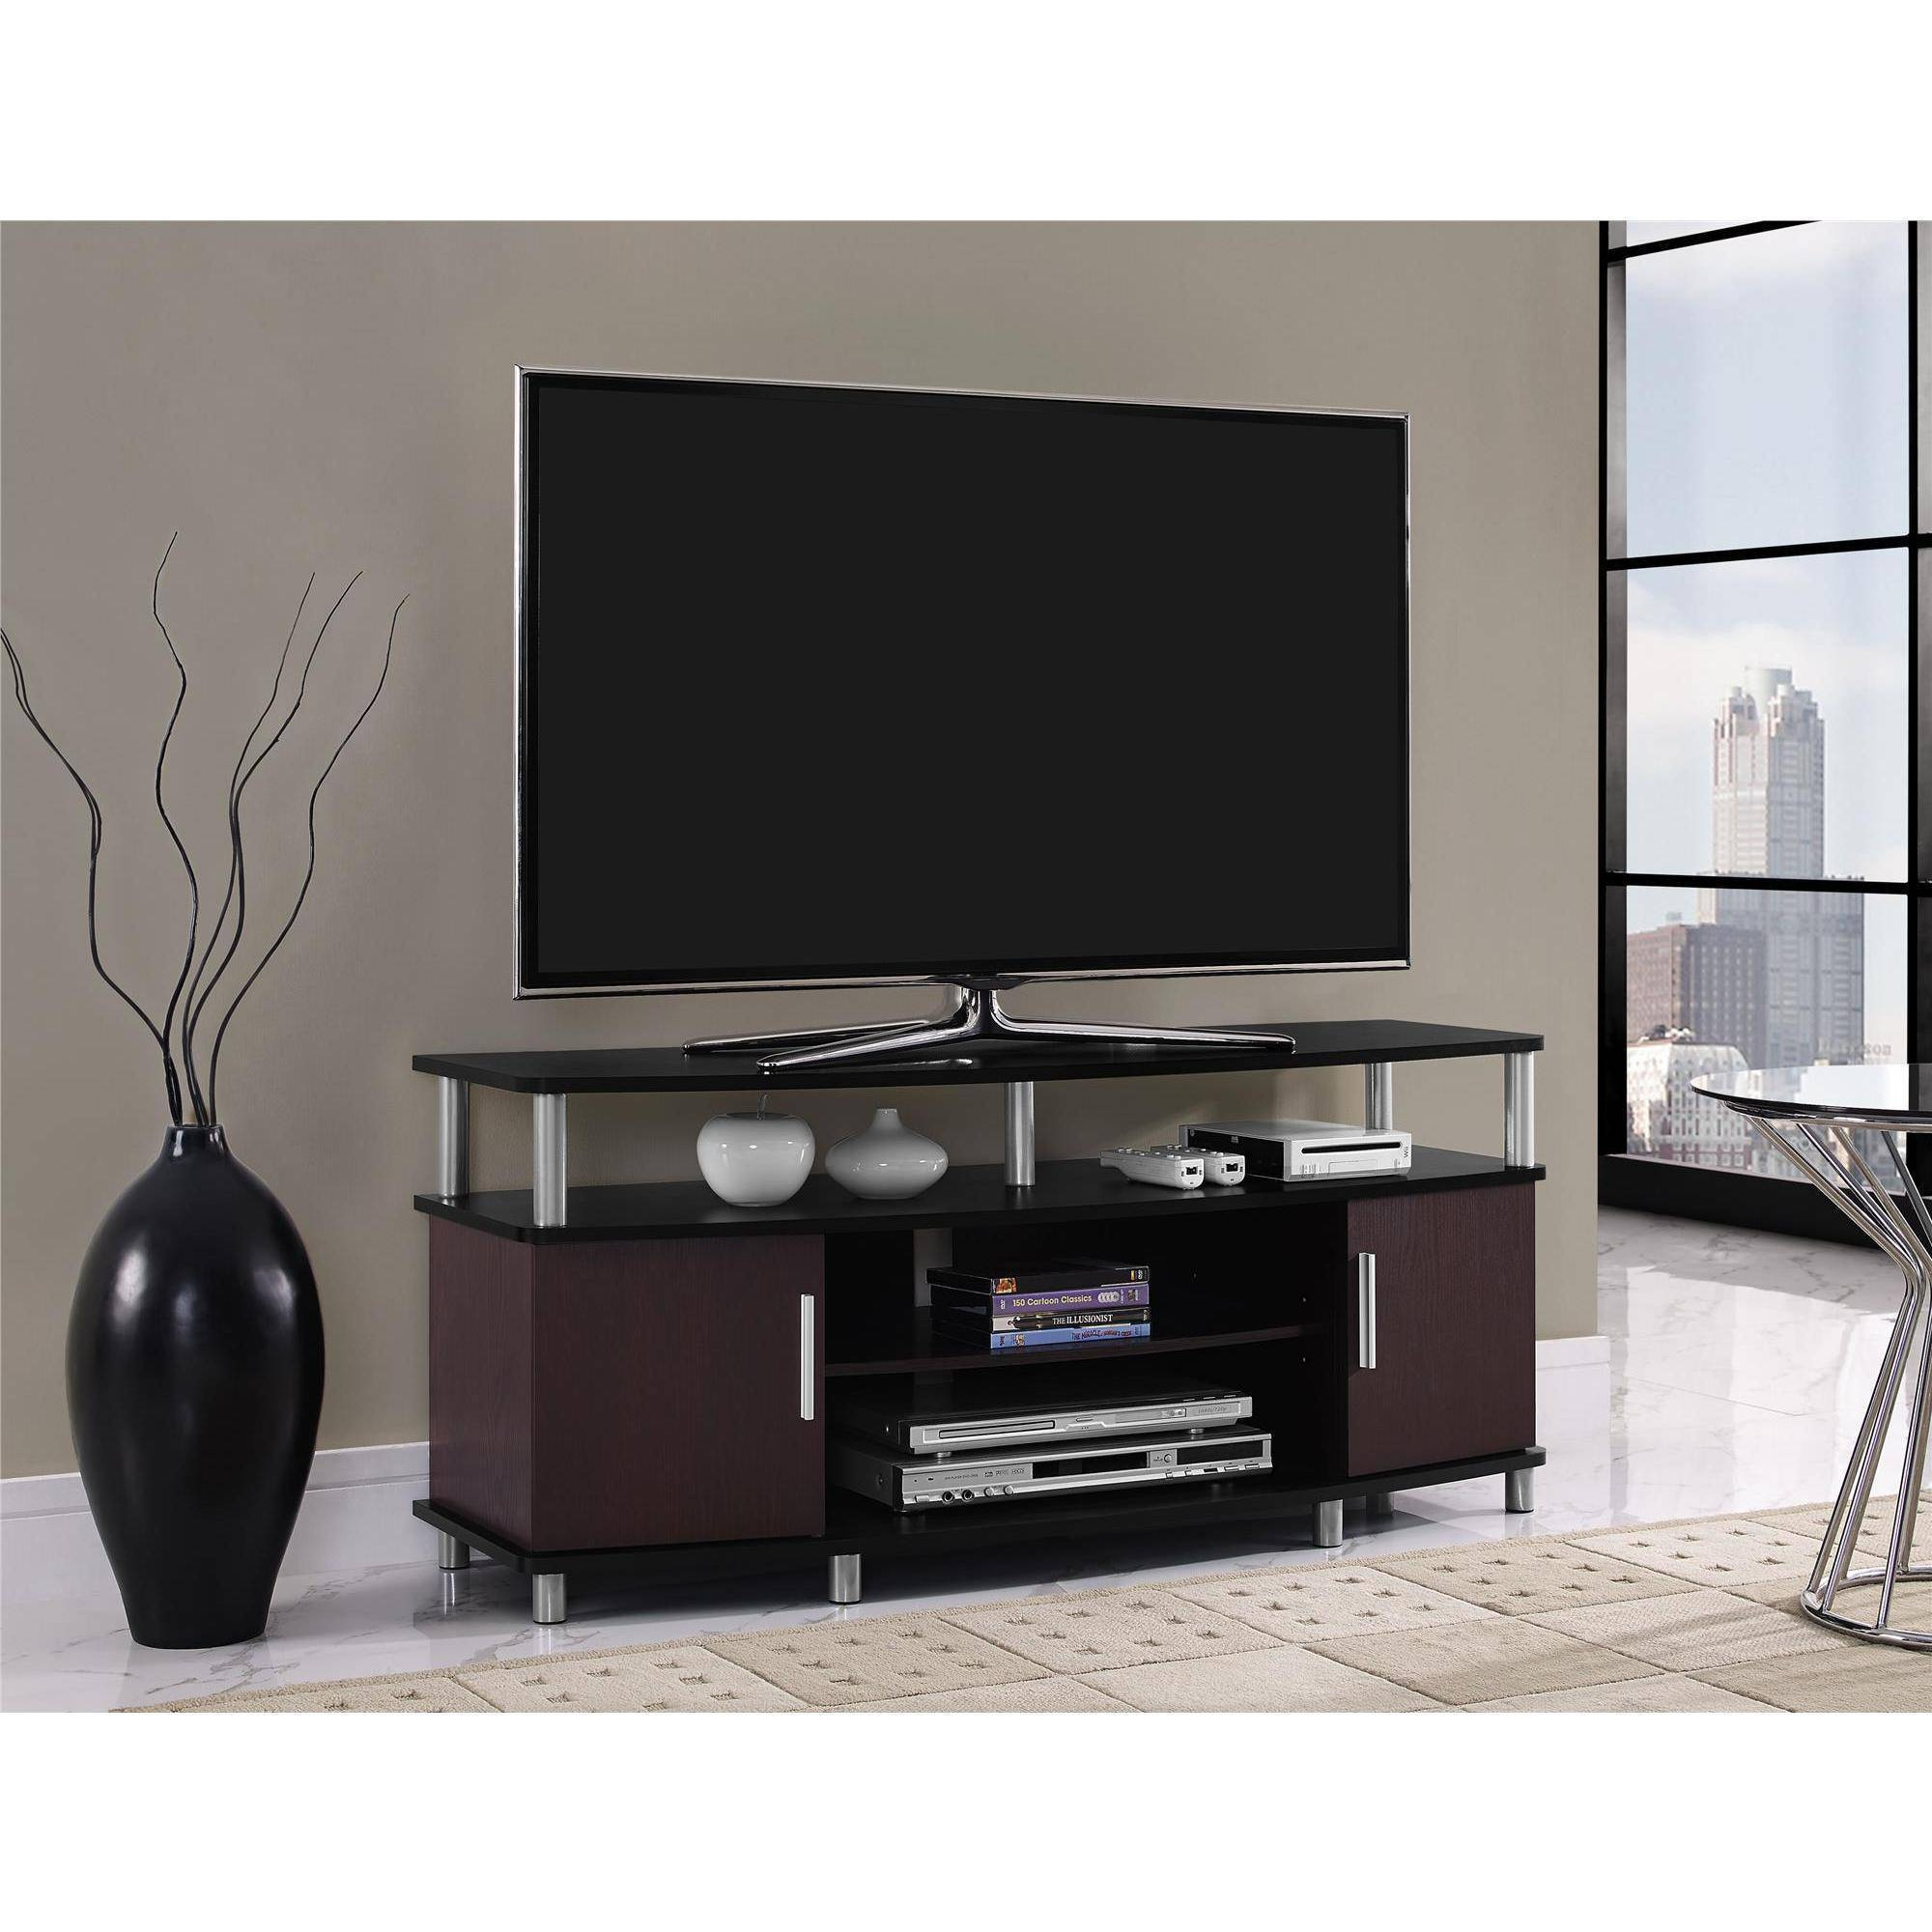 Tv Stands & Entertainment Centers - Walmart intended for Corner Wooden Tv Cabinets (Image 15 of 15)